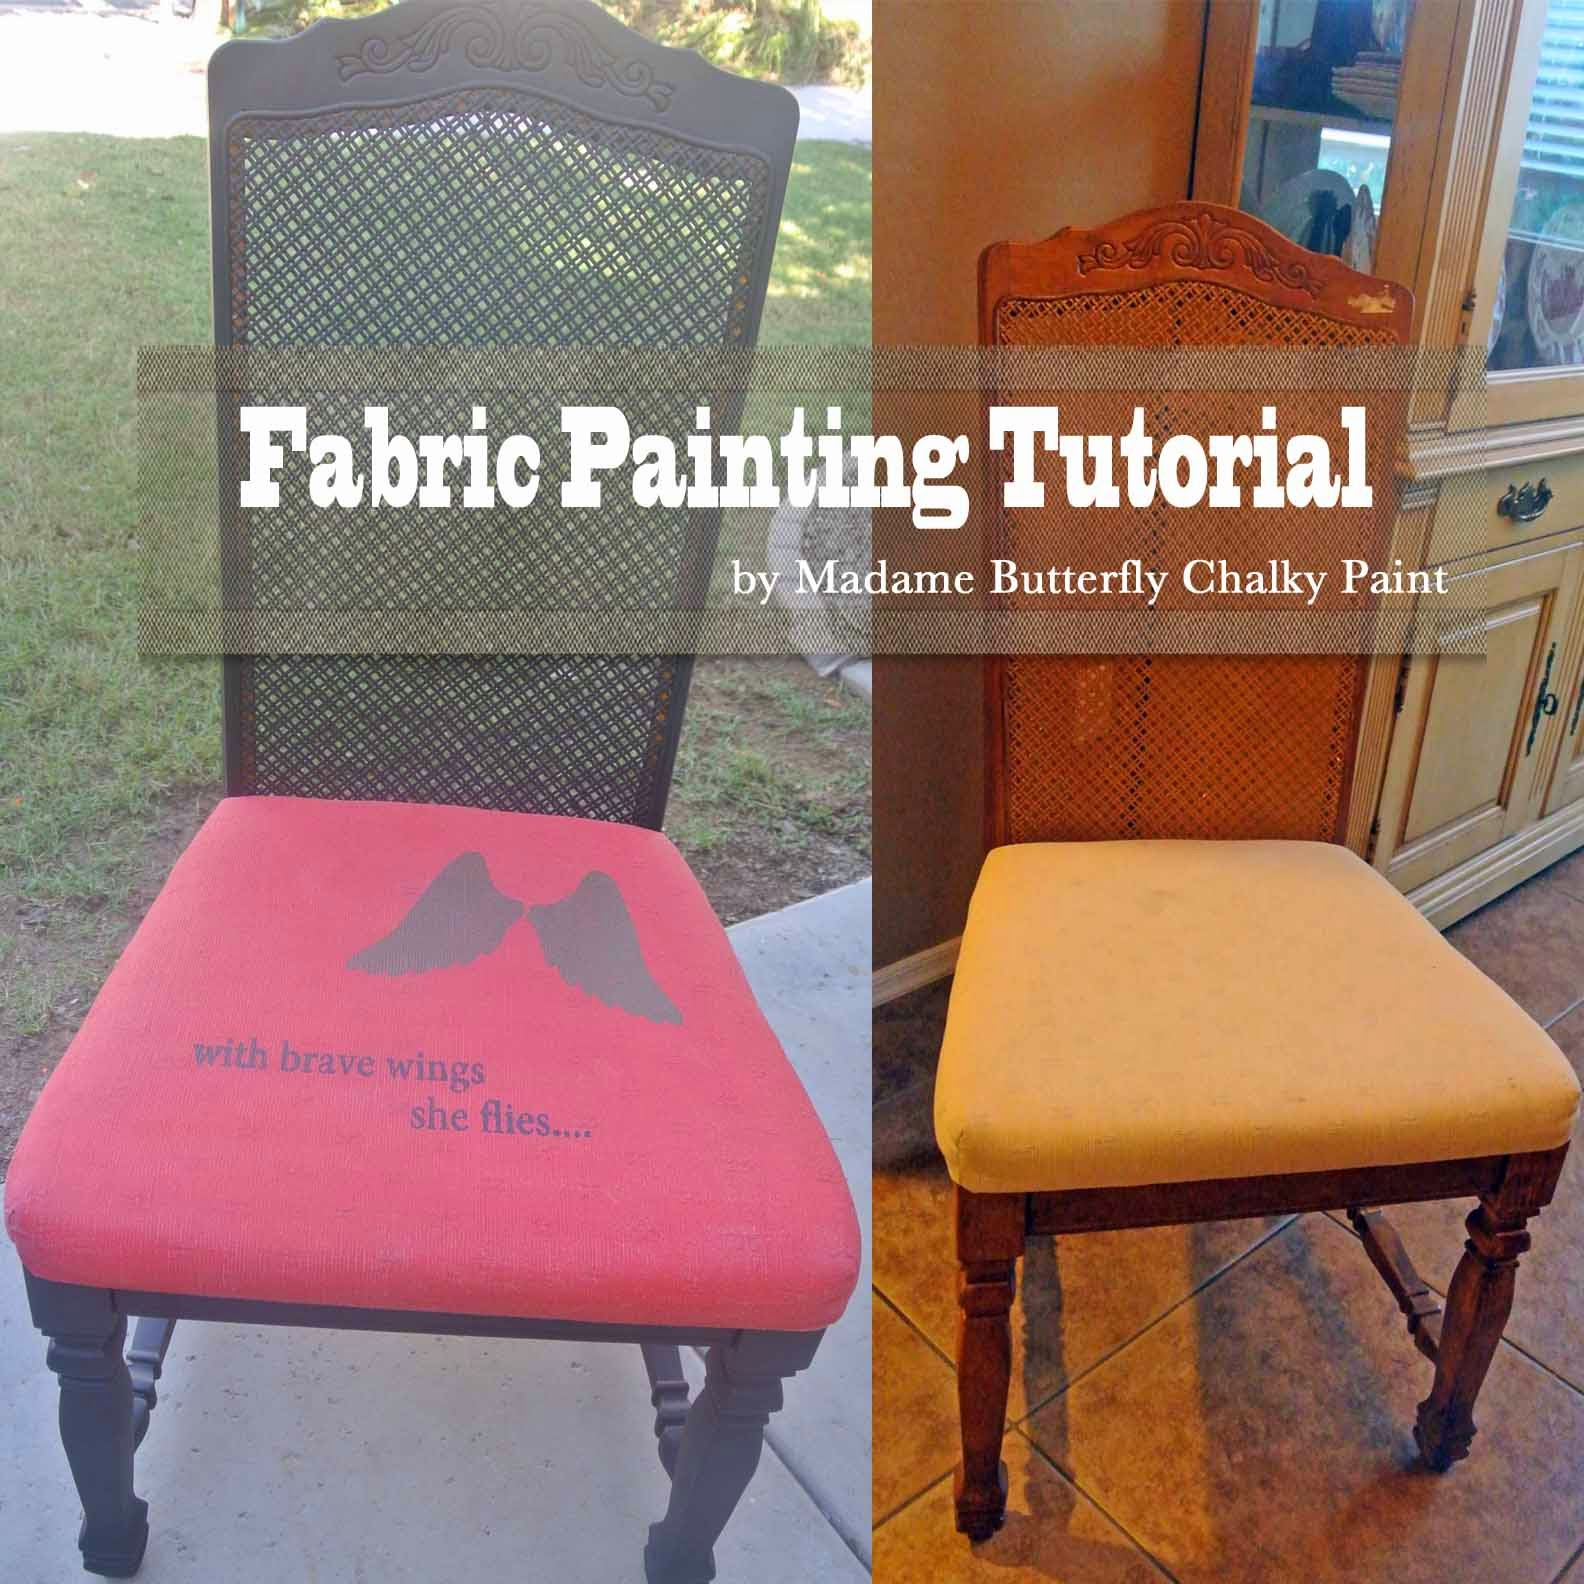 yes you can paint upholstery fabric with madame butterfly chalky paint tutorial madame. Black Bedroom Furniture Sets. Home Design Ideas